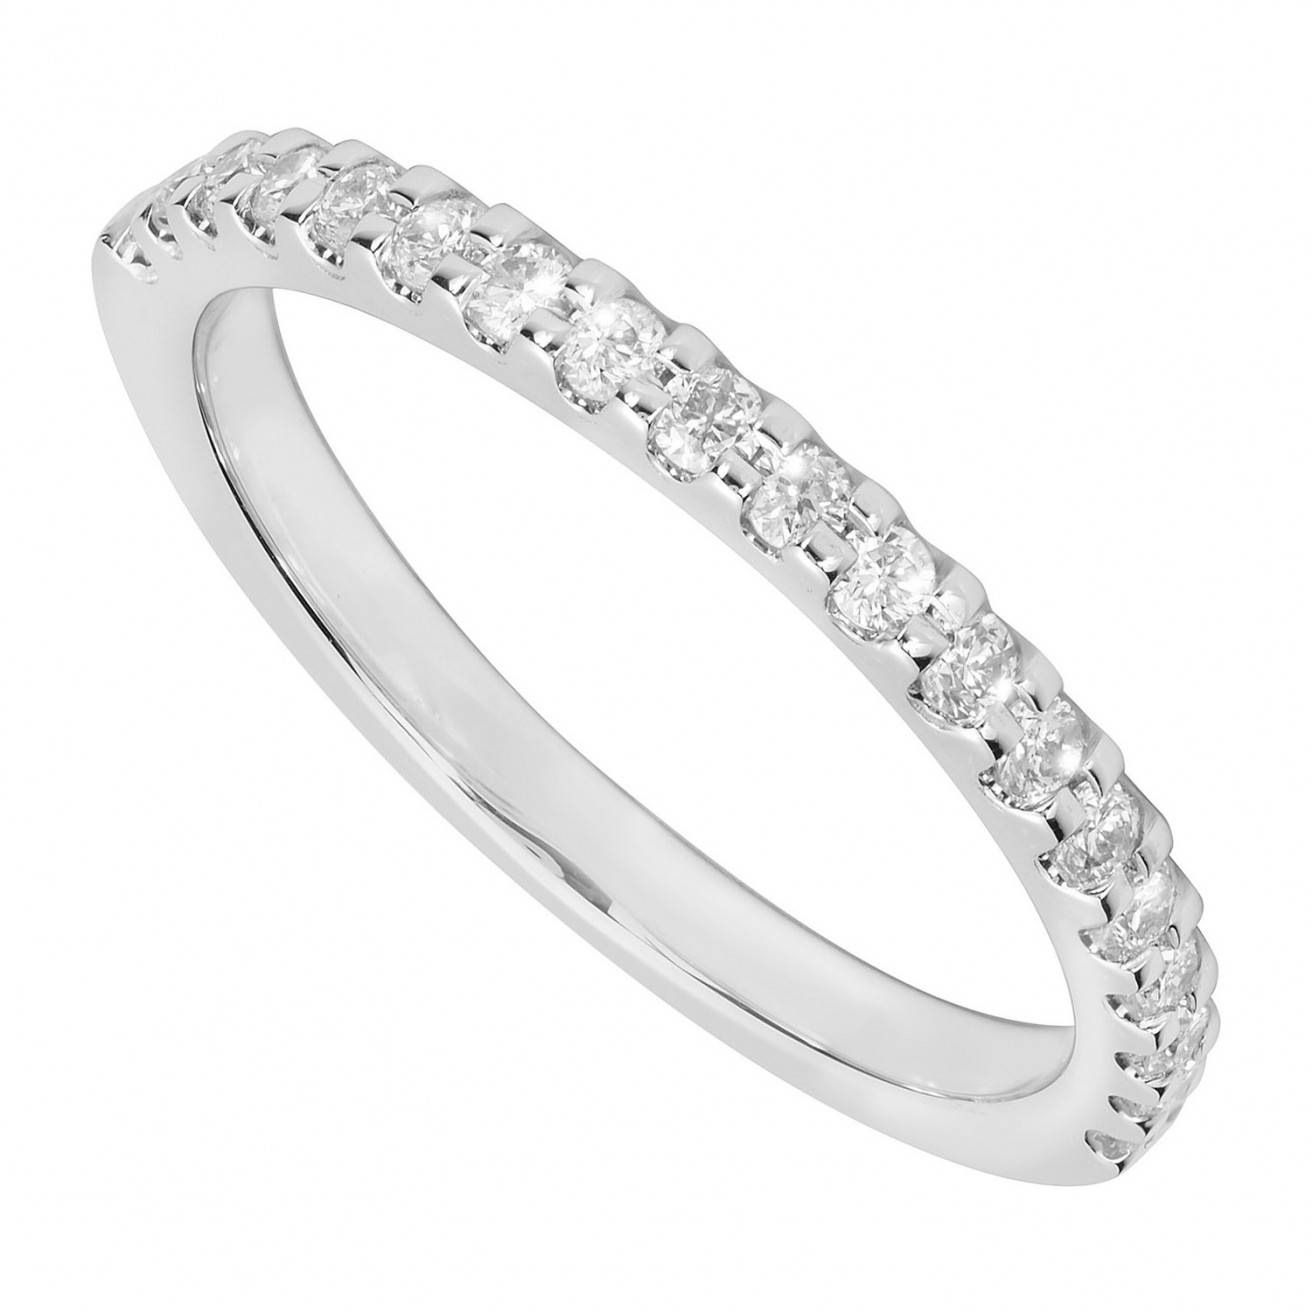 Diamond Wedding Bands Blue Nile Diamond Wedding Rings In Good Throughout Wedding Rings With Diamond Band (View 9 of 15)